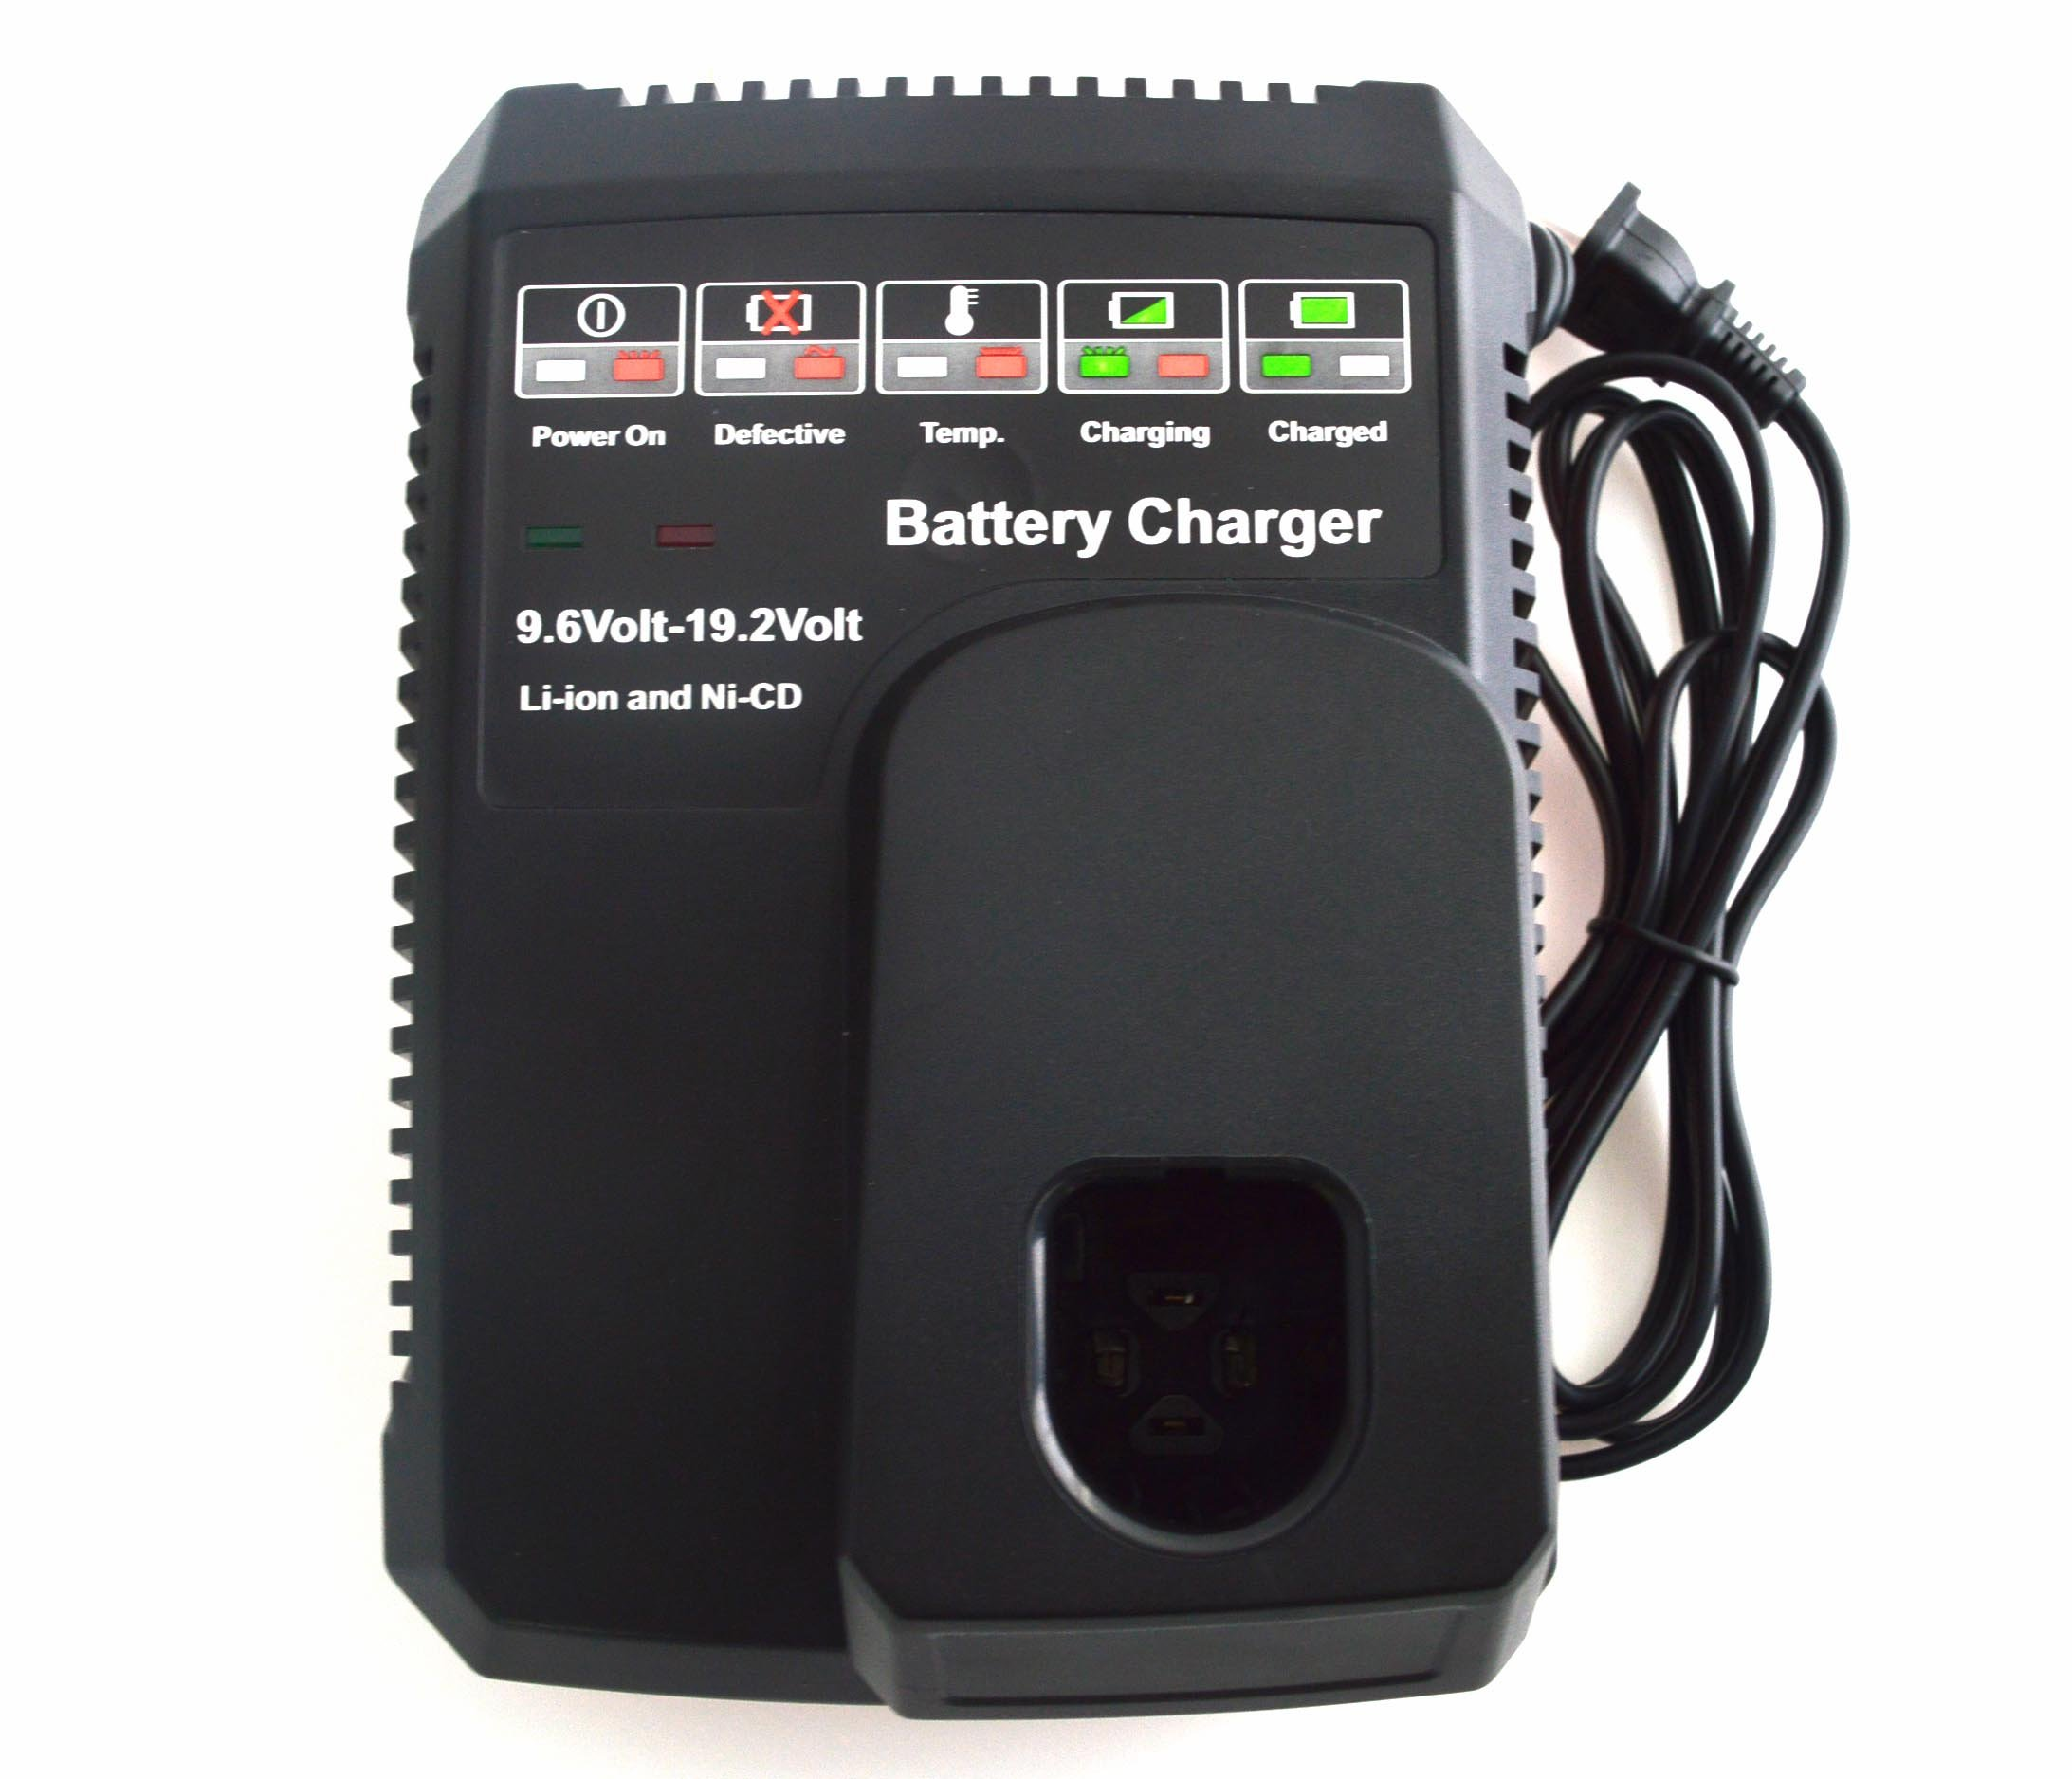 Janri Relacement Li-ion lithium ion & Ni-cd/Ni-Cad Ni-Mh power tool Battery Charger kit 9.6V MAX and 19.2V MAX For Craftsman C3 DieHard XCP 140152004 1425301 1323903 130279005 11375 11376 315.PP2011